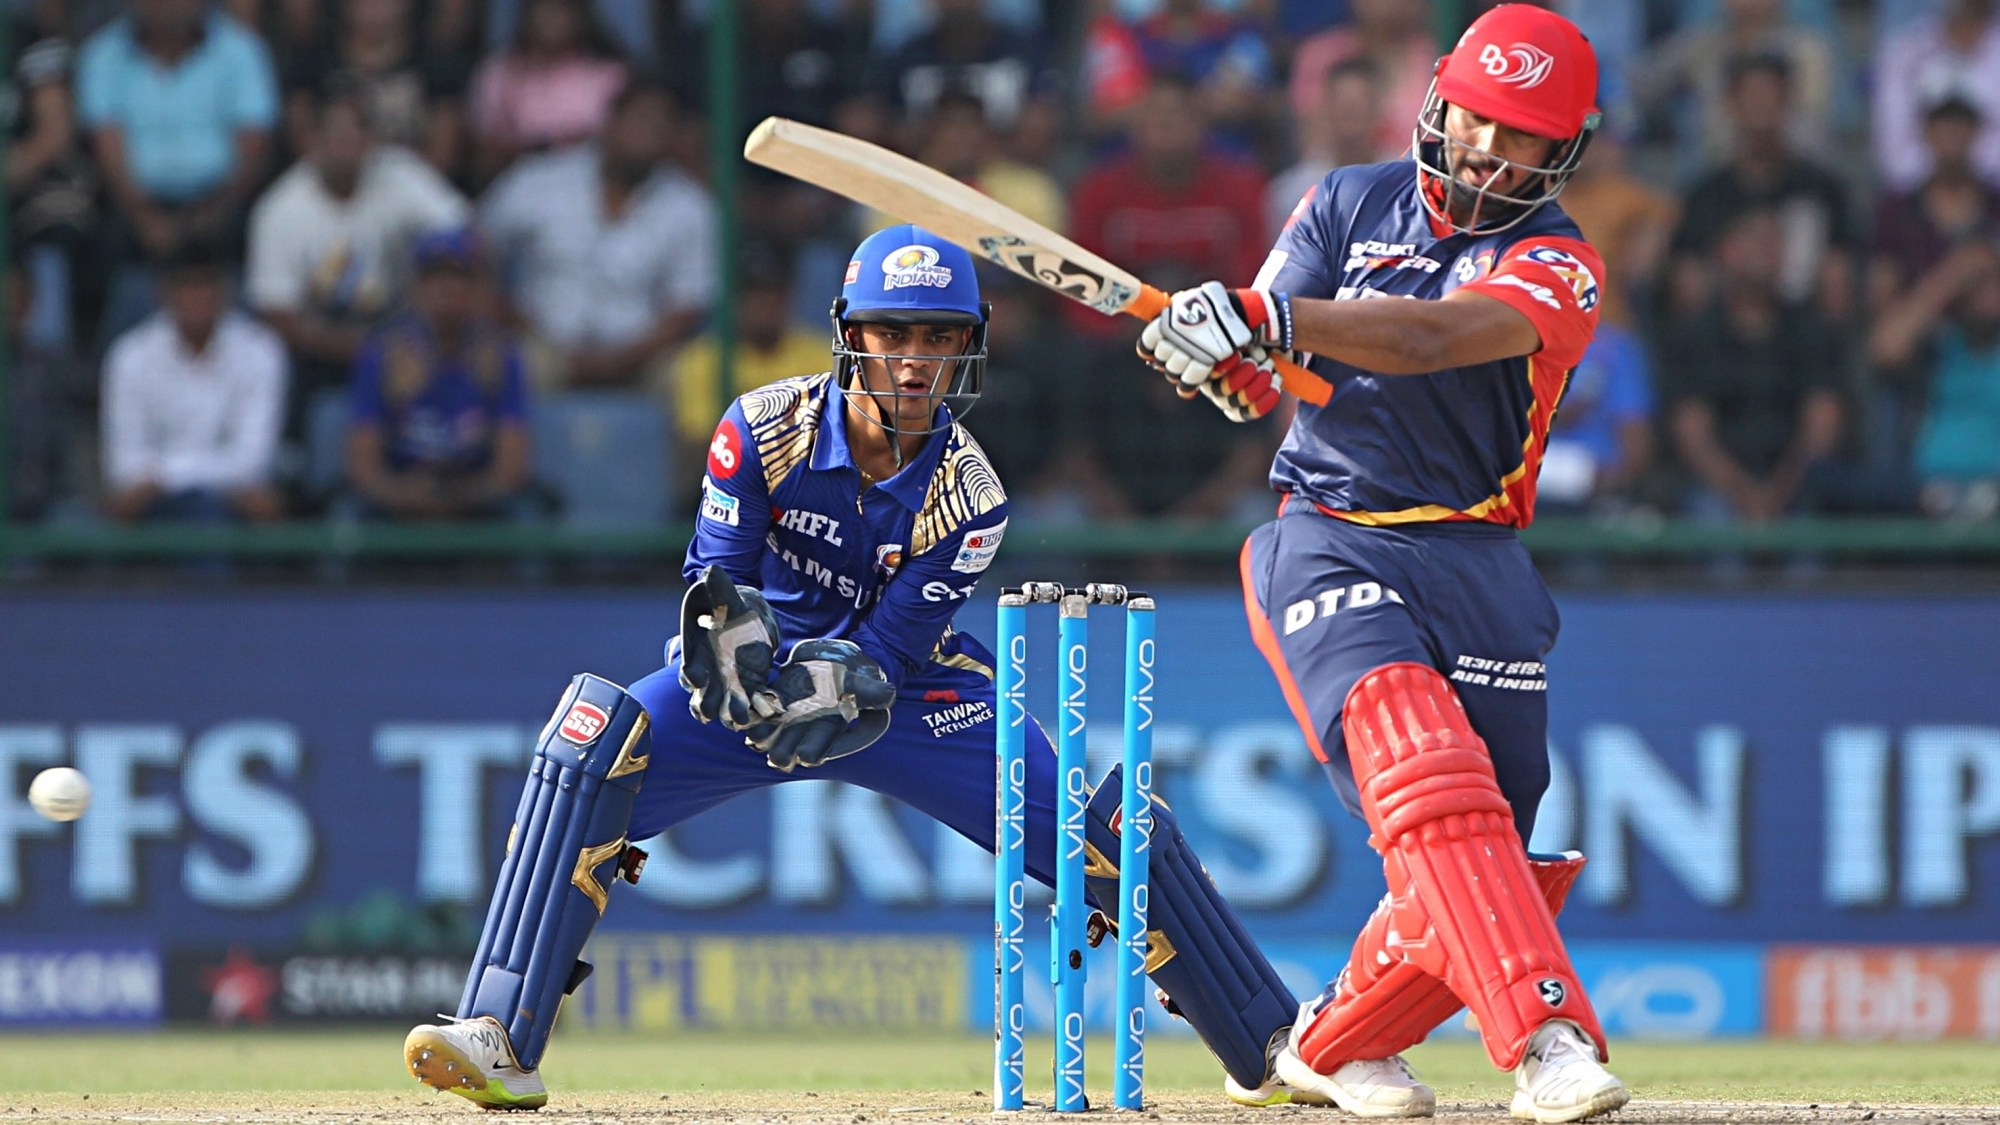 IPL 2018: Twitter reacts as Rishabh Pant's blazing 64 takes Delhi to 174 against MI